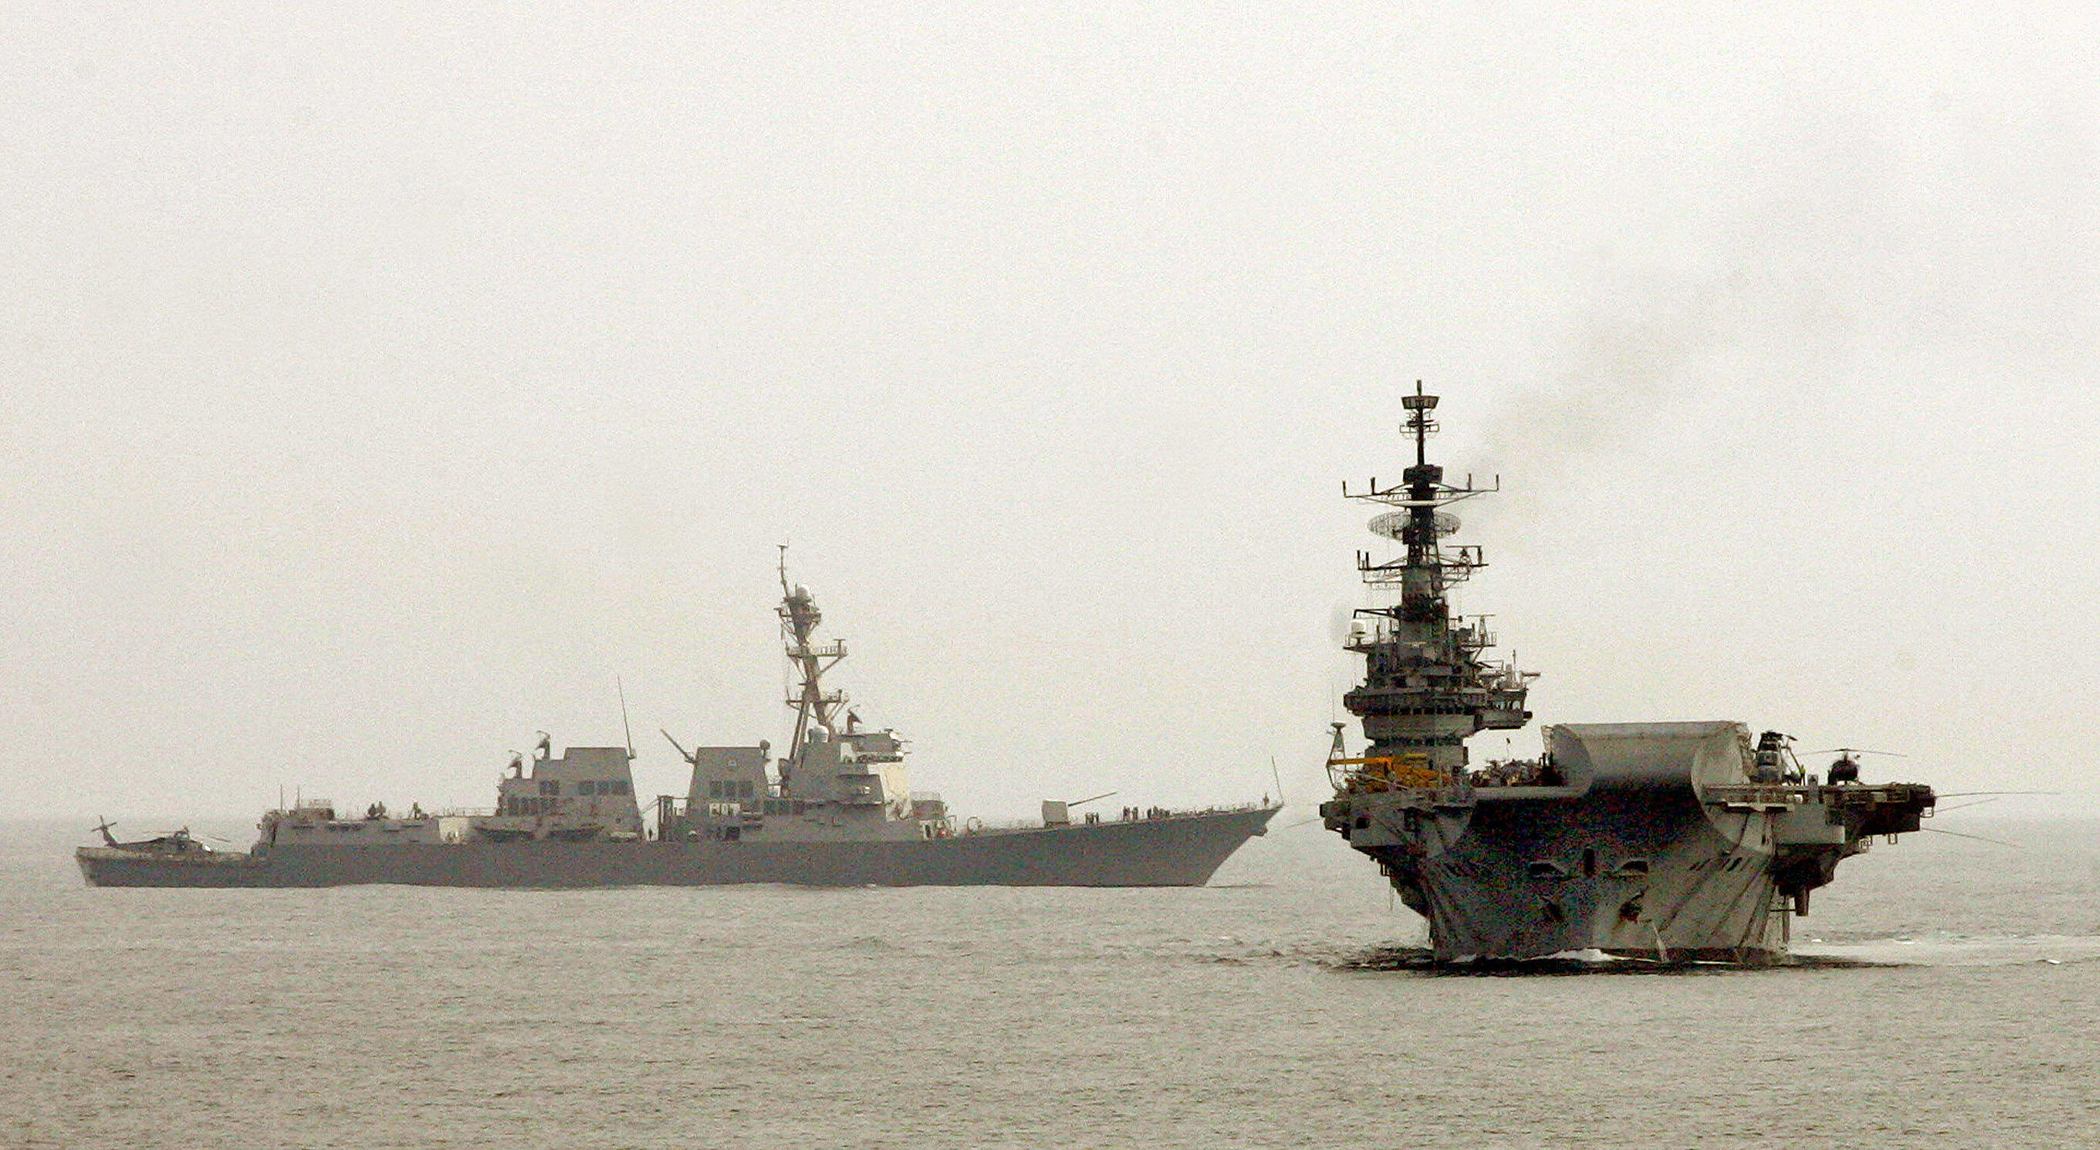 India, Australia to hold naval drills with eye on China